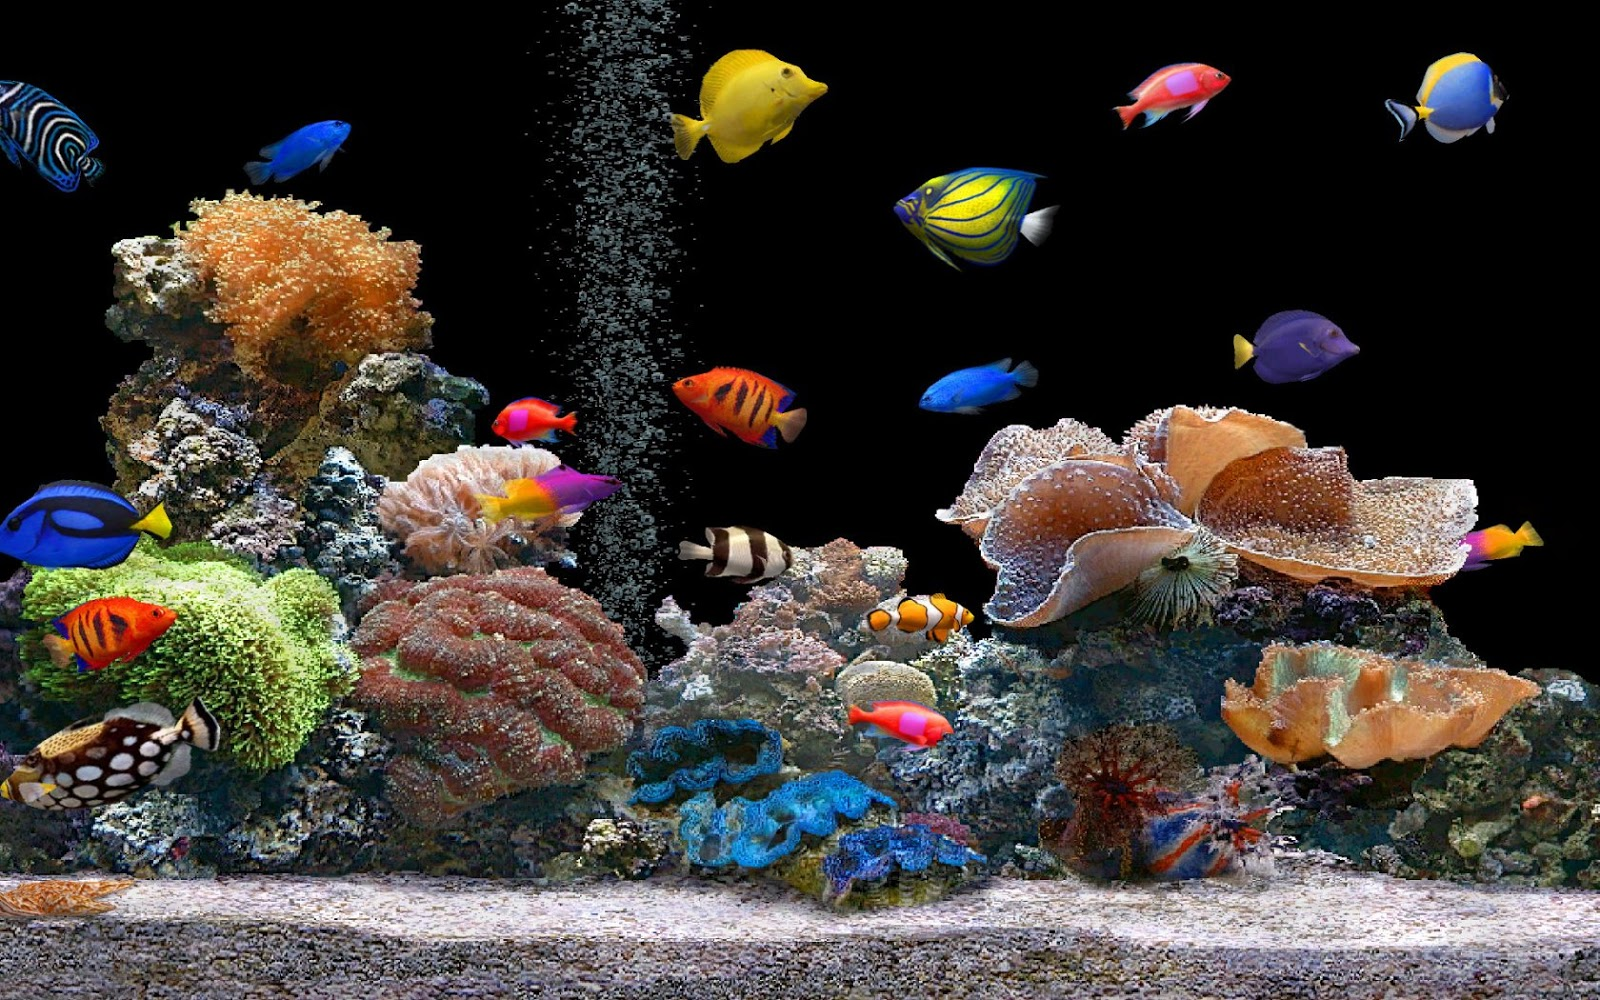 Free Latest Full HD Quality Desktop Wallpapers: Download Full HD 3D Aquarium Wallpapers